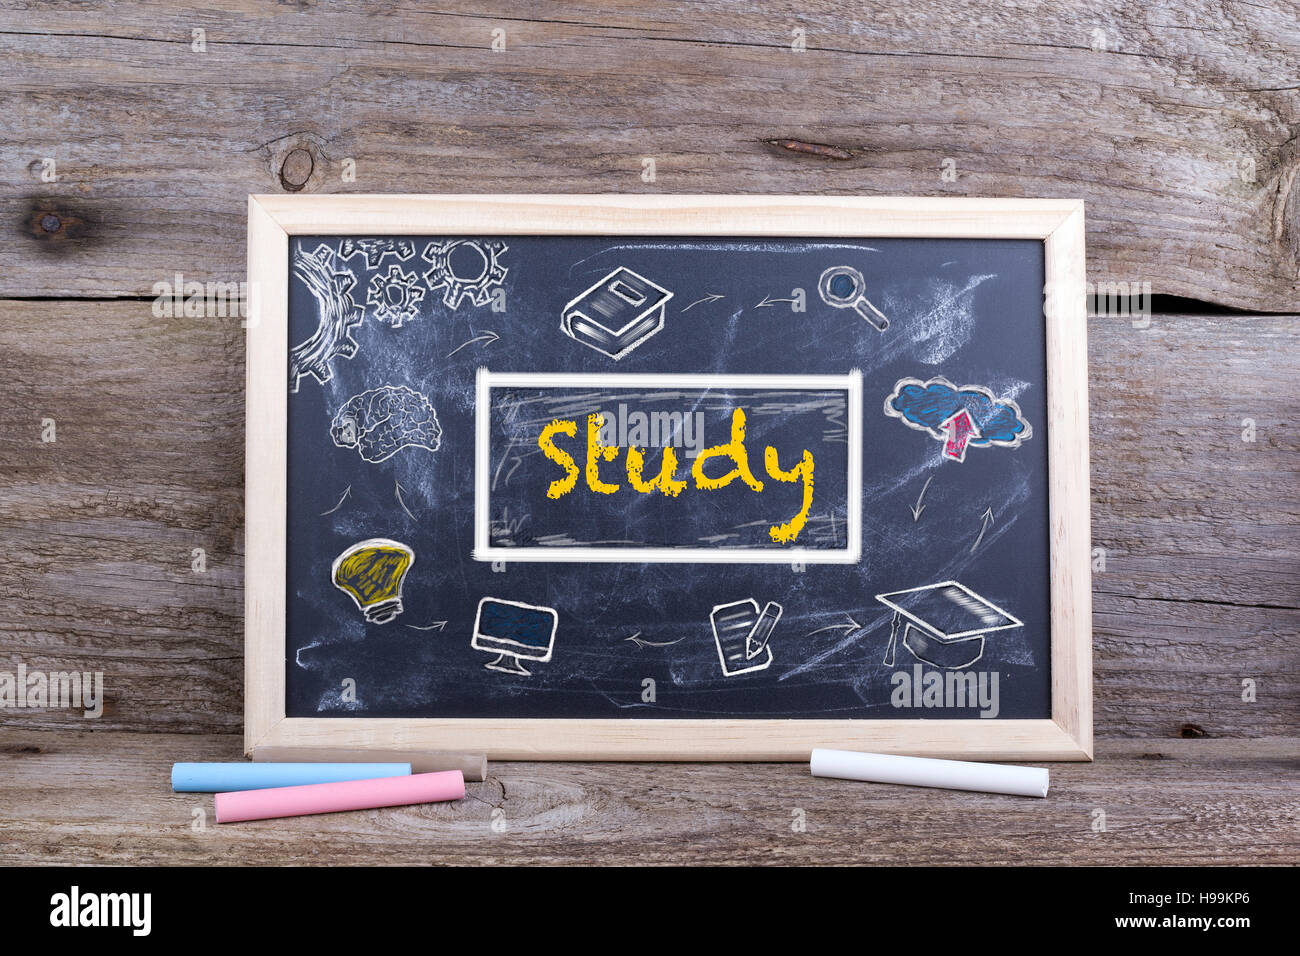 Study on blackboard. Knowledge Education Academics Learning Concept - Stock Image